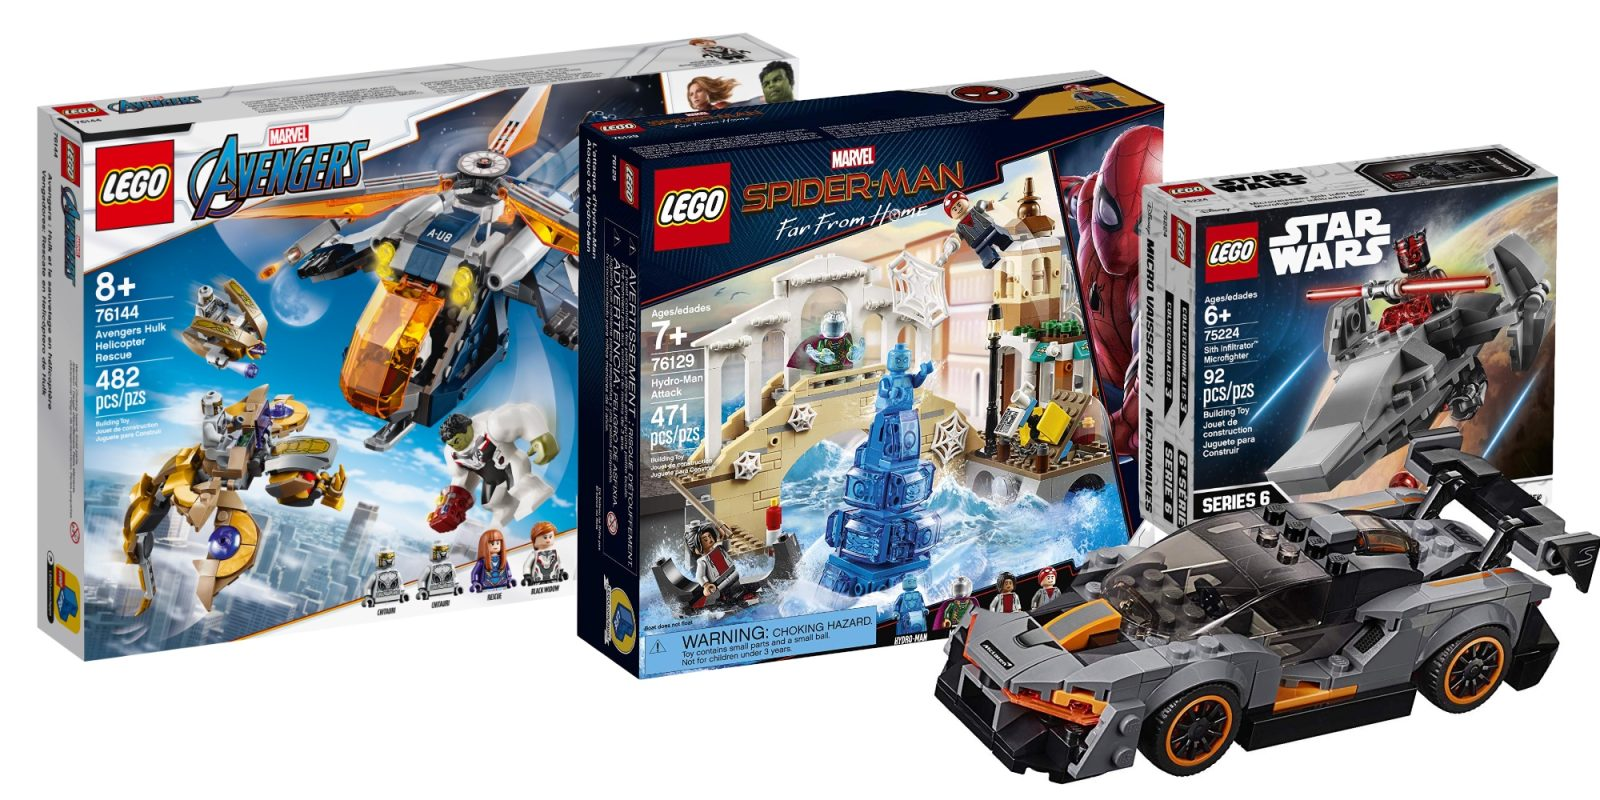 Assemble this 470-piece Spider-Man LEGO set for $21 (Save 35%), more from $5